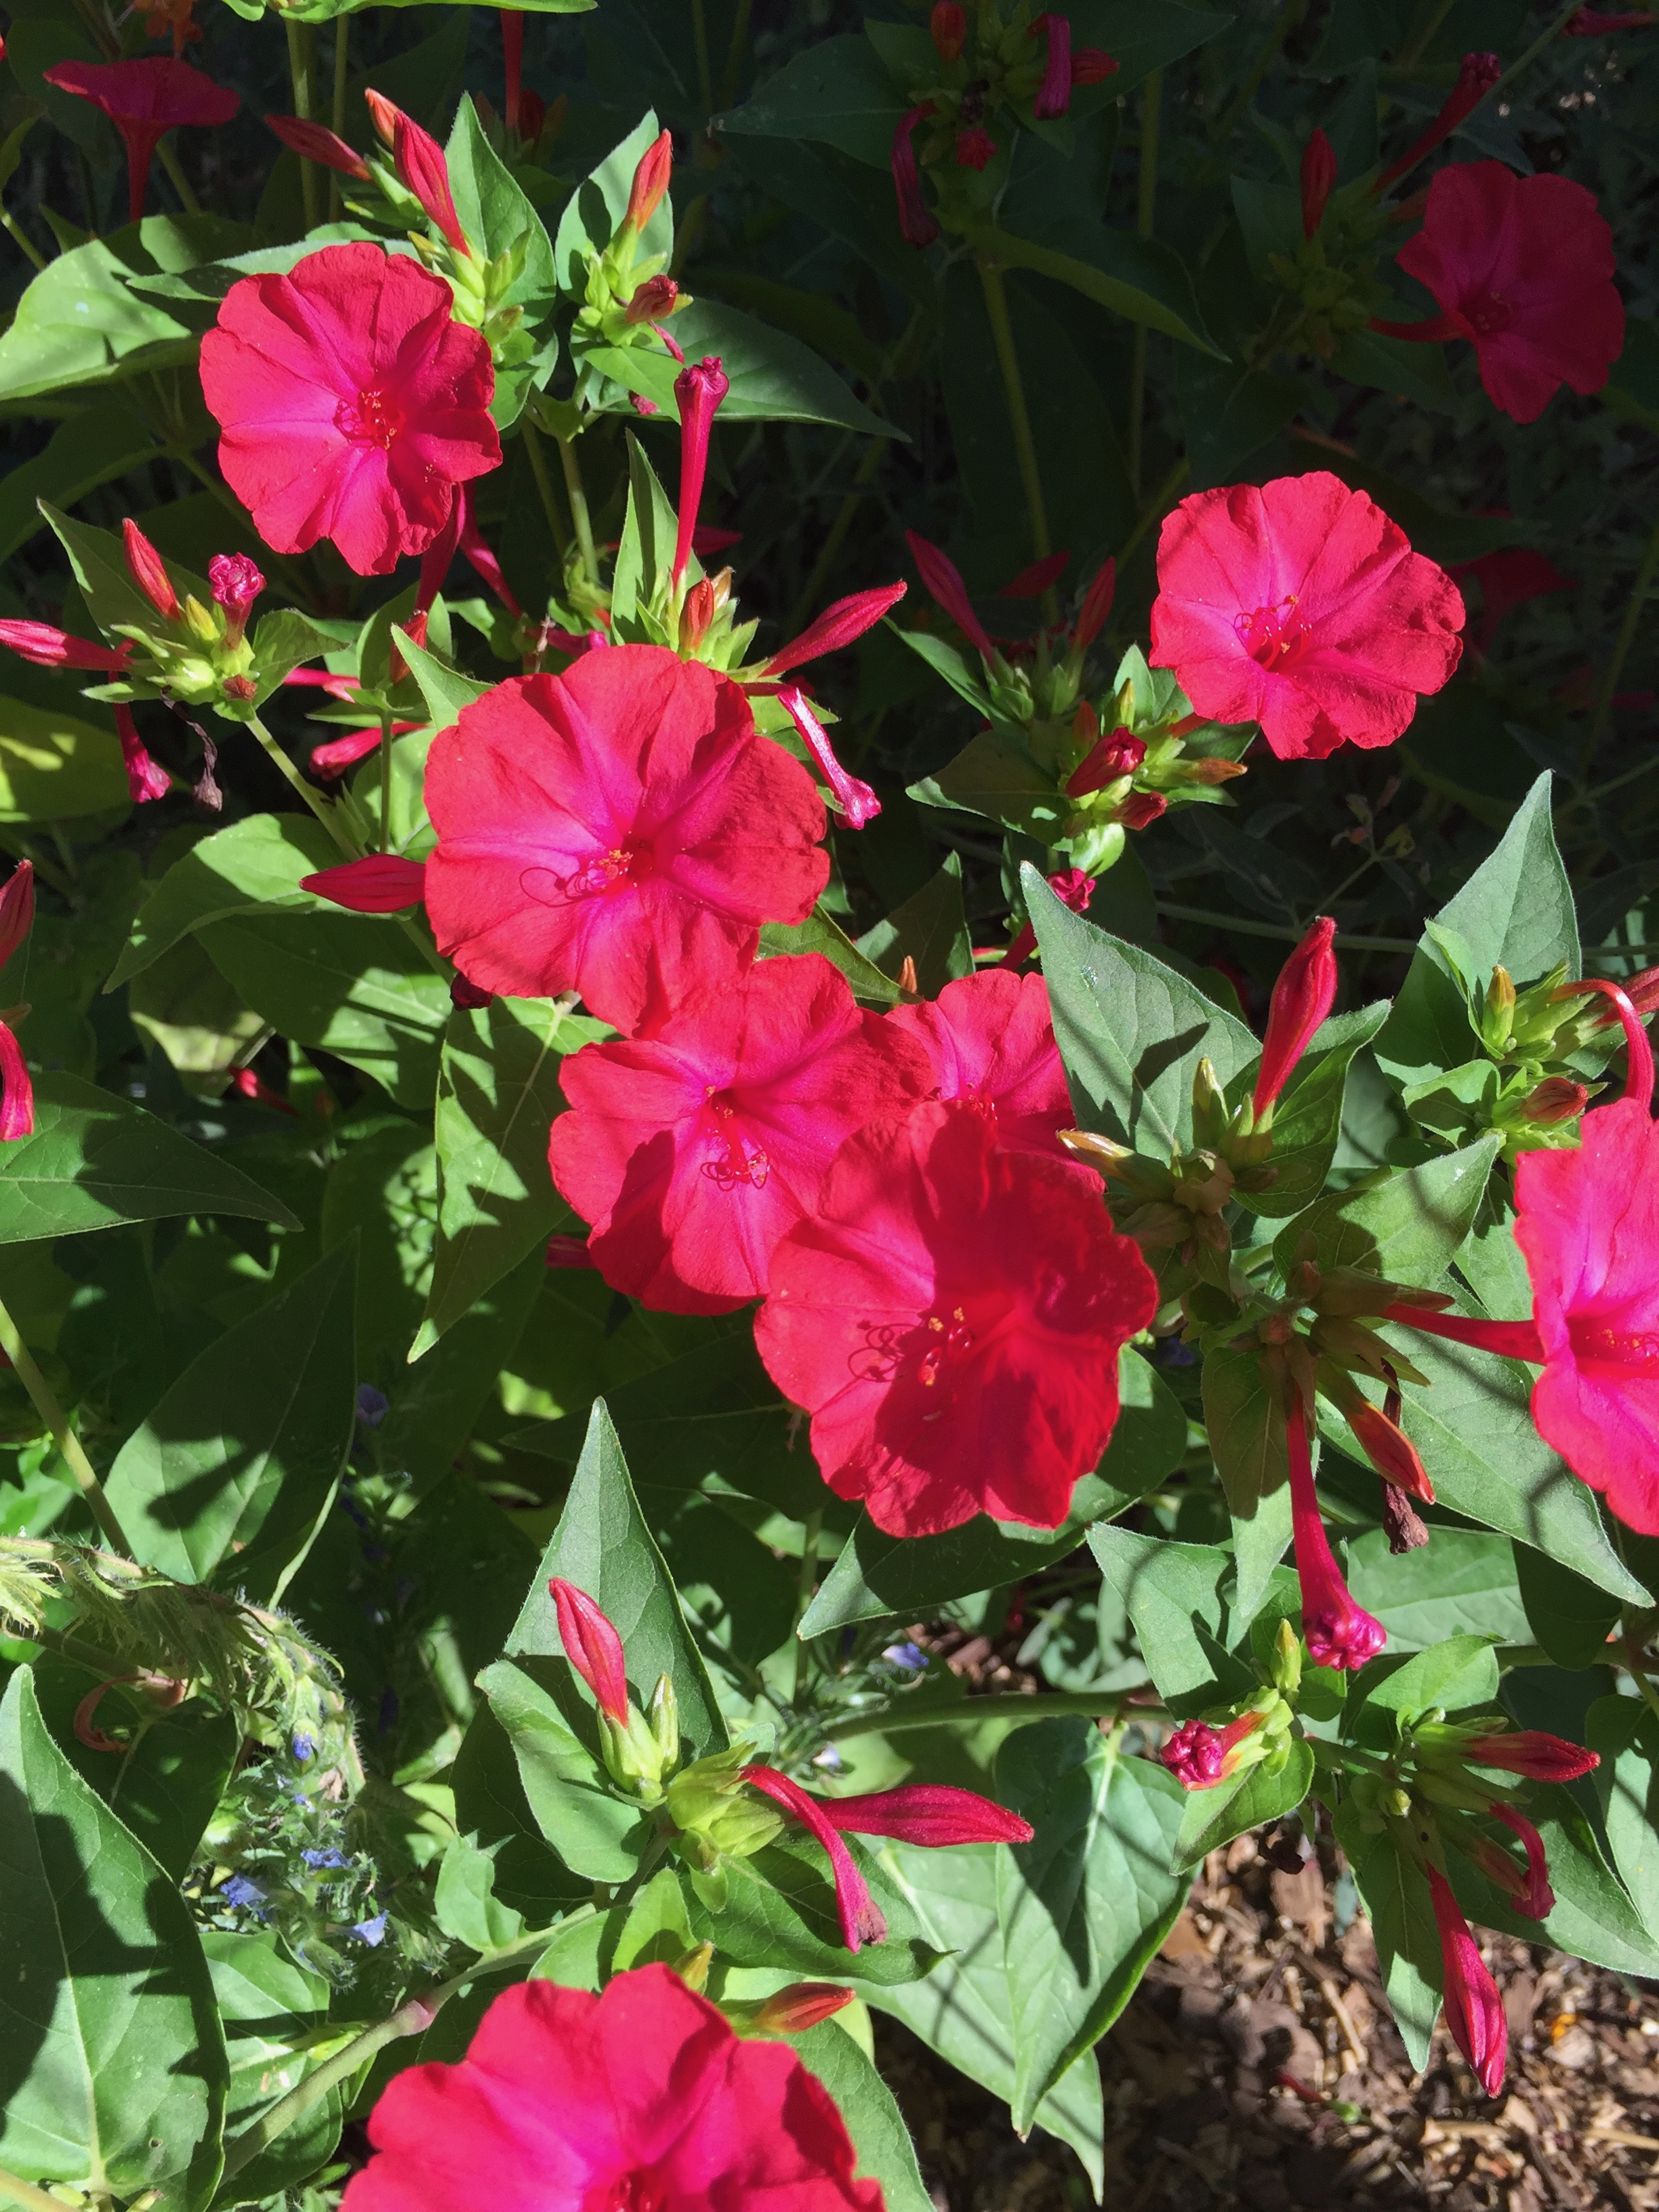 The Four O'Clocks re-seeded and are blooming everywhere at dawn and dusk, lighting up the garden with their neon pink.